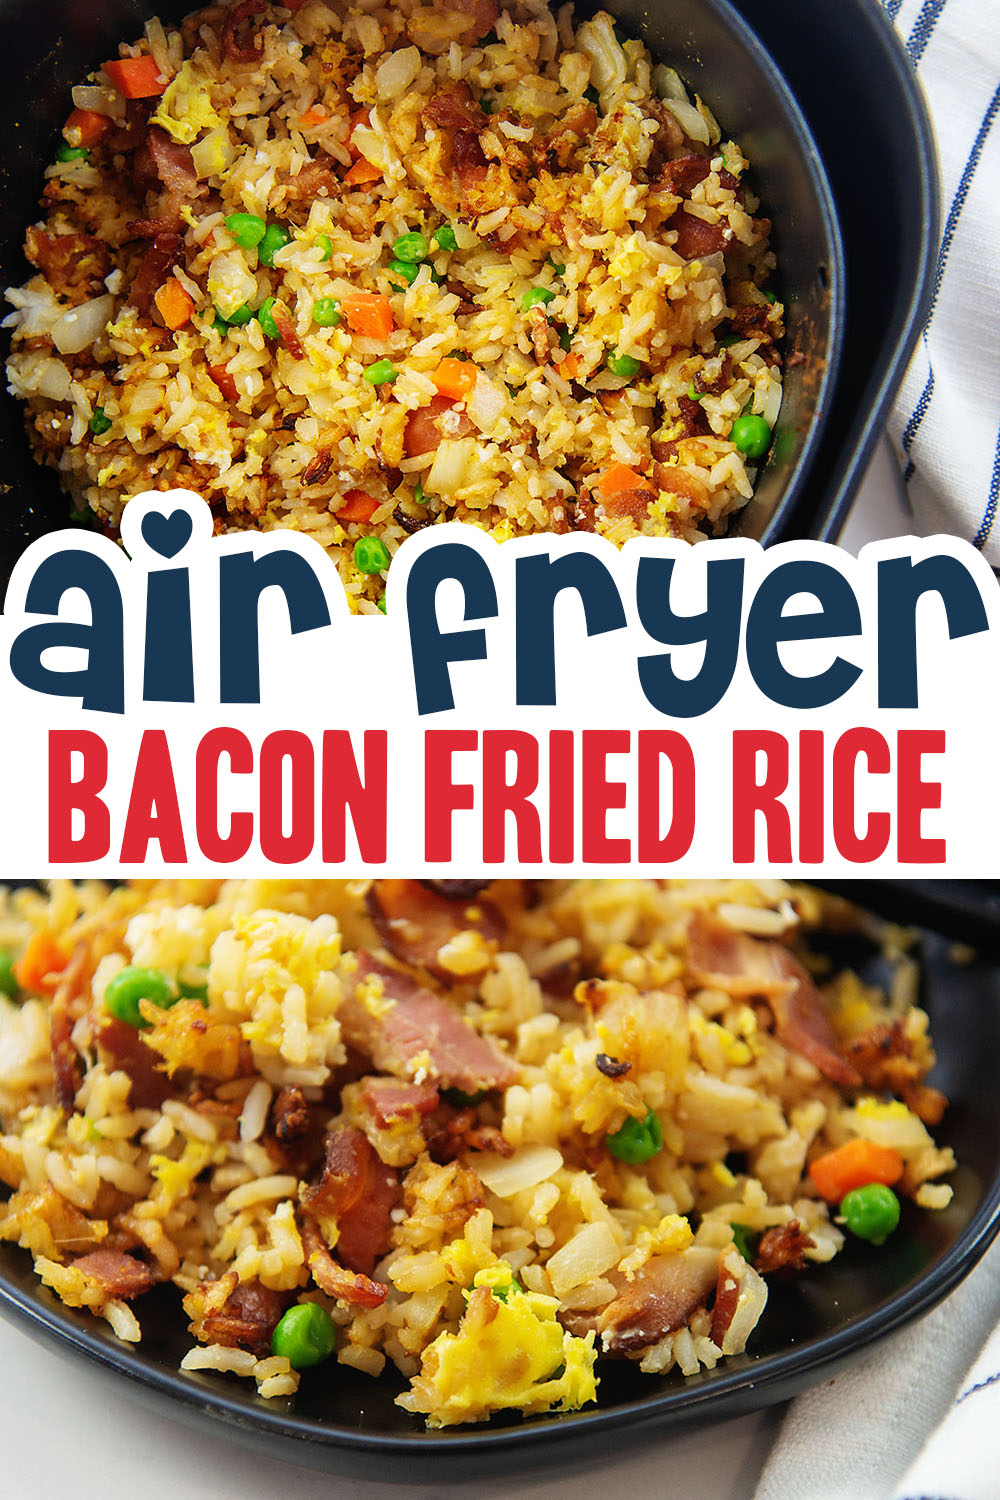 We love our fried rice so we decided to try and make it in our air fryer.  The results were just as good as cooking it in a skillet!